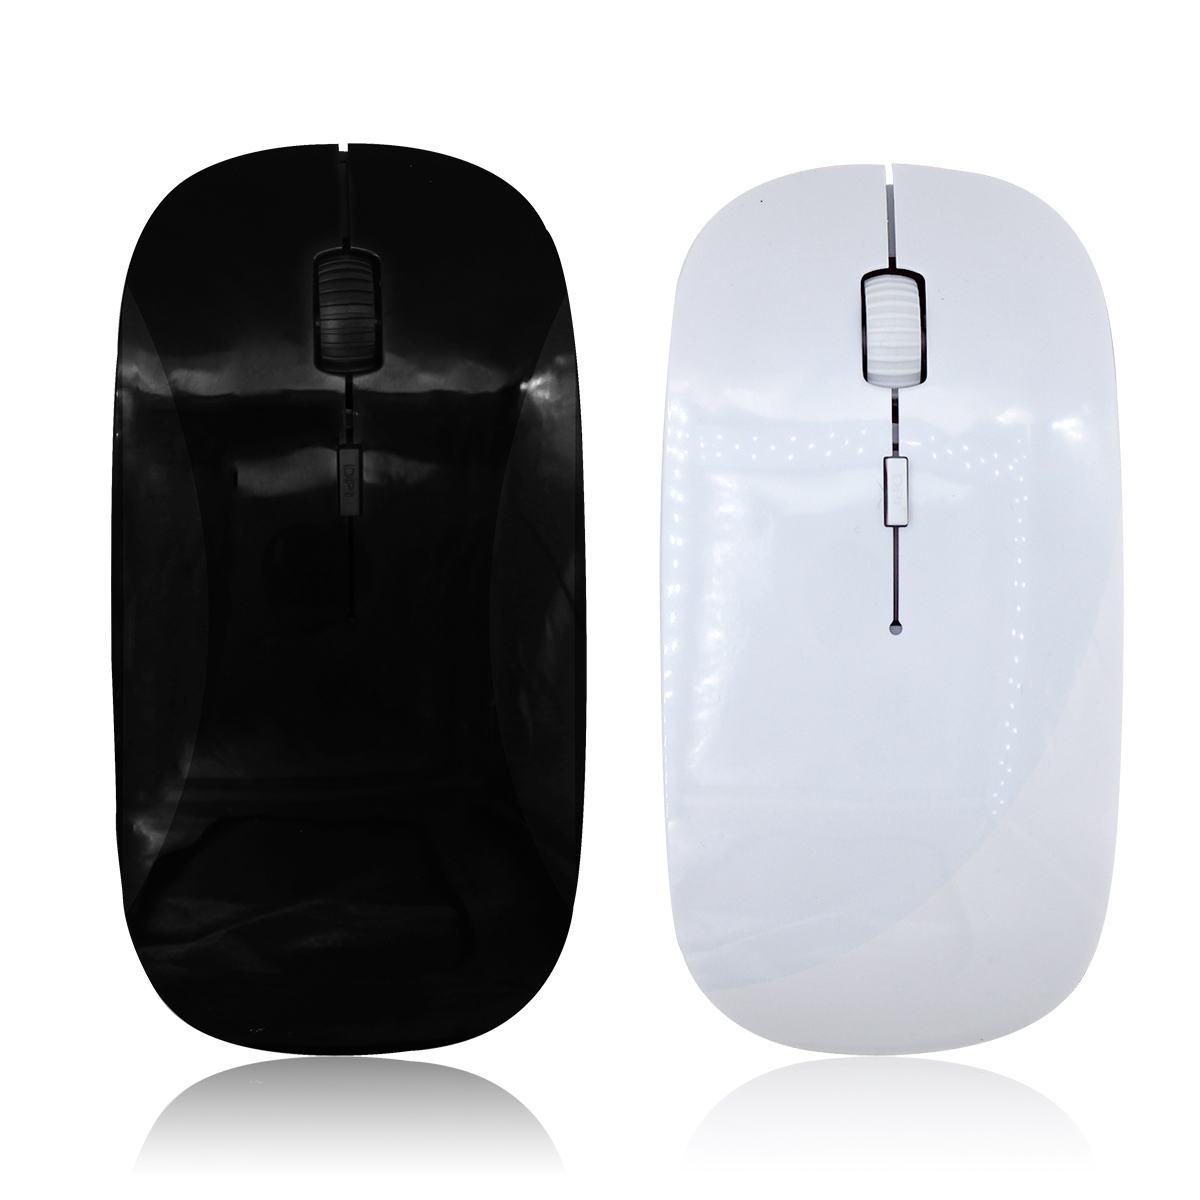 Wireless Computer Mouse 1600 DPI USB Optical 2.4G Receiver Super Slim Mouse For PC Laptop 3